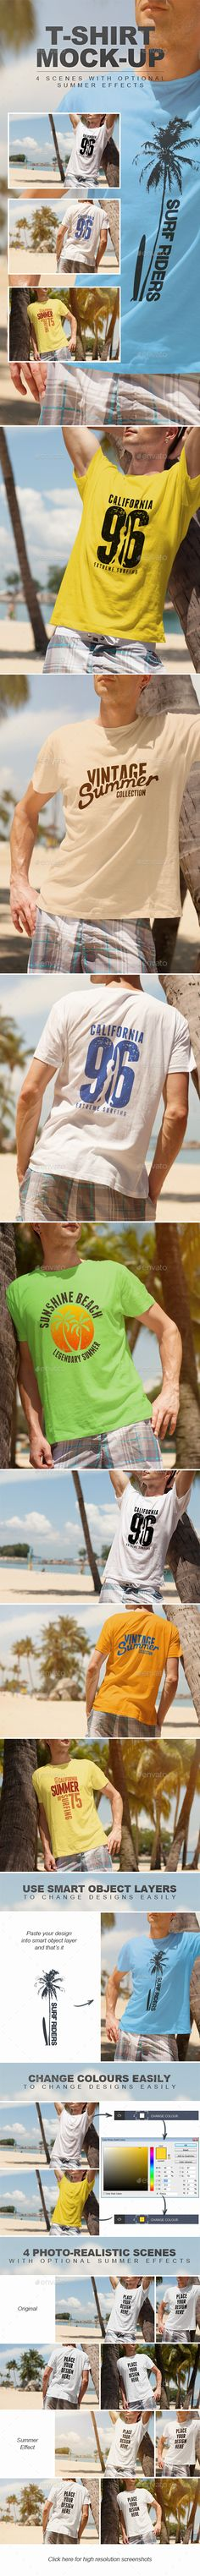 Summer Male Tshirt Mockup — Photoshop PSD #sell #sand • Available here → https://graphicriver.net/item/summer-male-tshirt-mockup/11877692?ref=pxcr